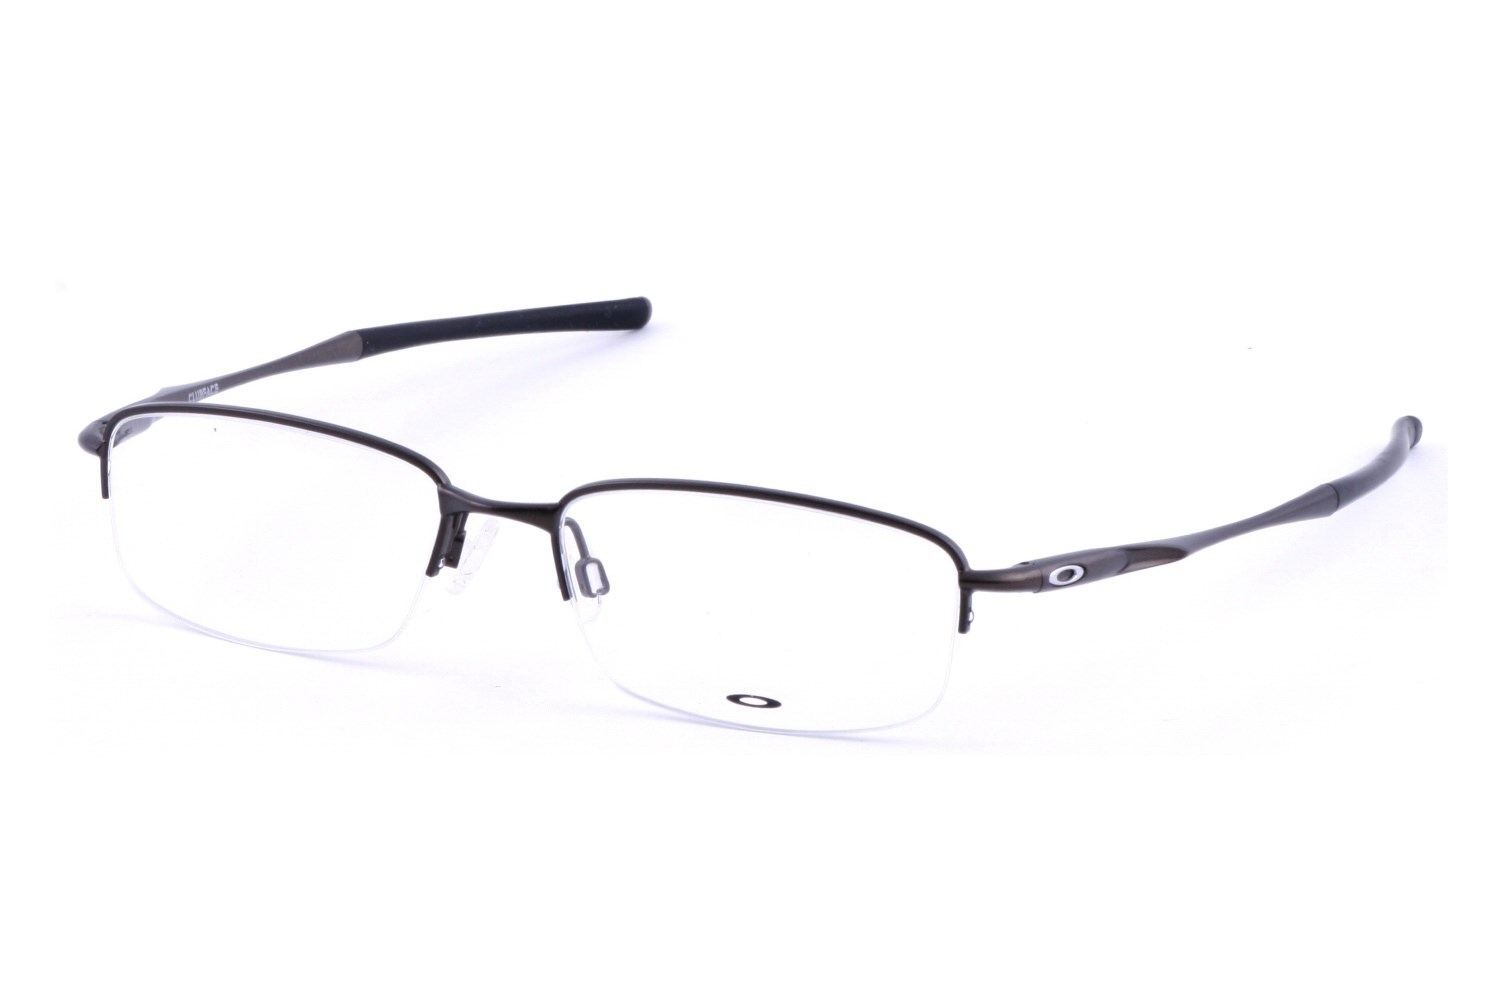 oakley clubface 54 prescription eyeglasses